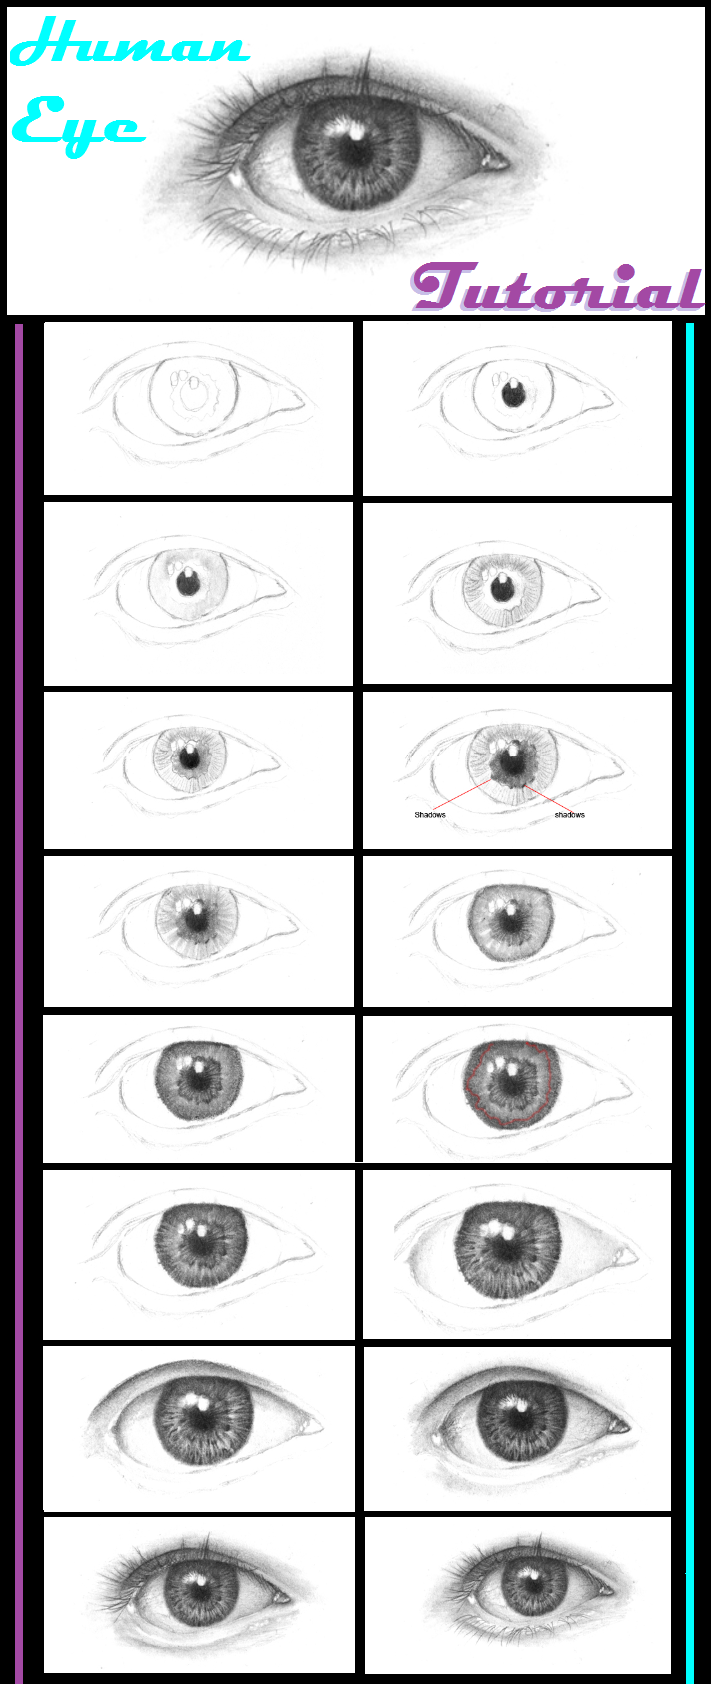 How to draw a human eye. #human_eye_tutorial